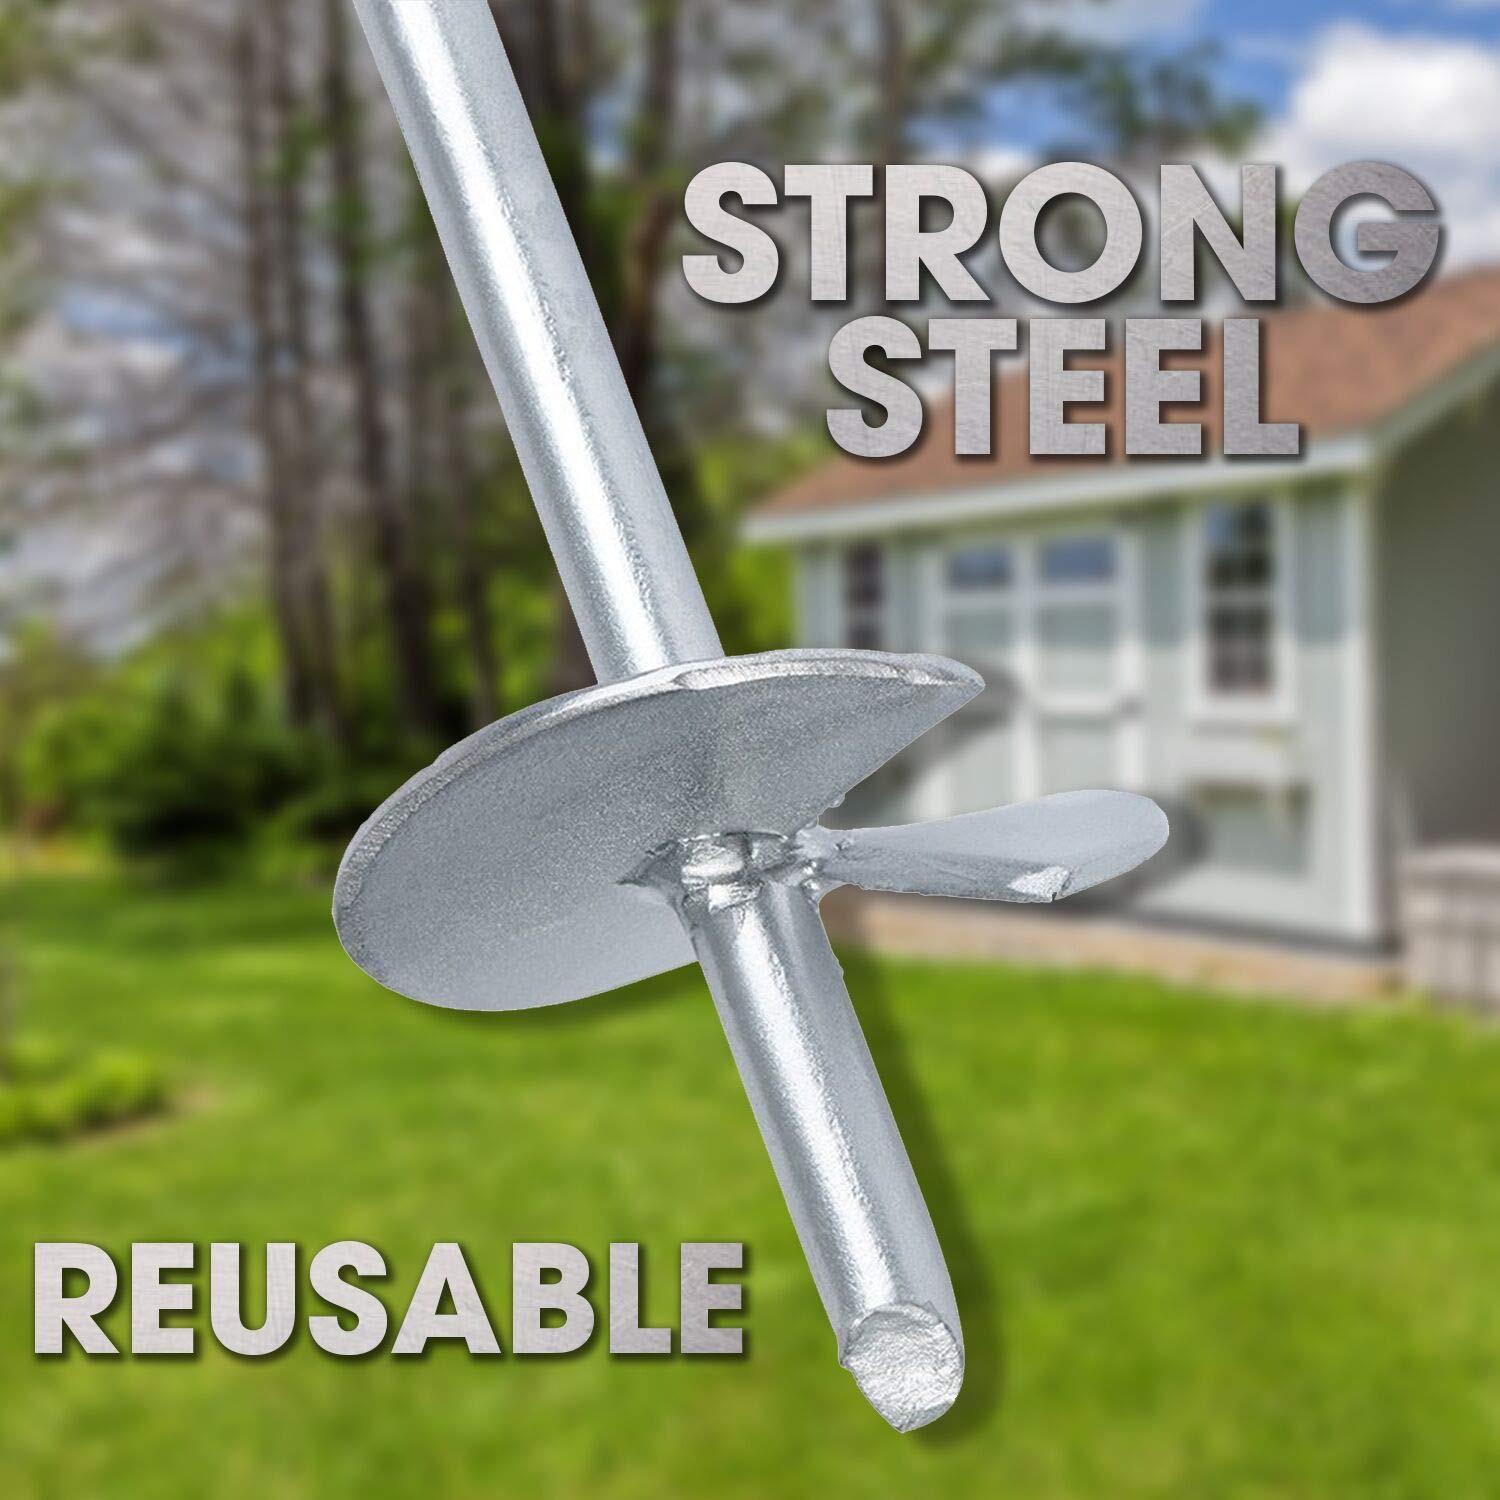 Reusable Powerful 2-Piece Earth Auger Shed Anchor Kit 10 Sec Install w//Cordless Drill Rust Proof Steel Anchor Set Heavy Duty 1000 LBS Pressure Tested Hold Per Stake Galvanized Last 20 Years